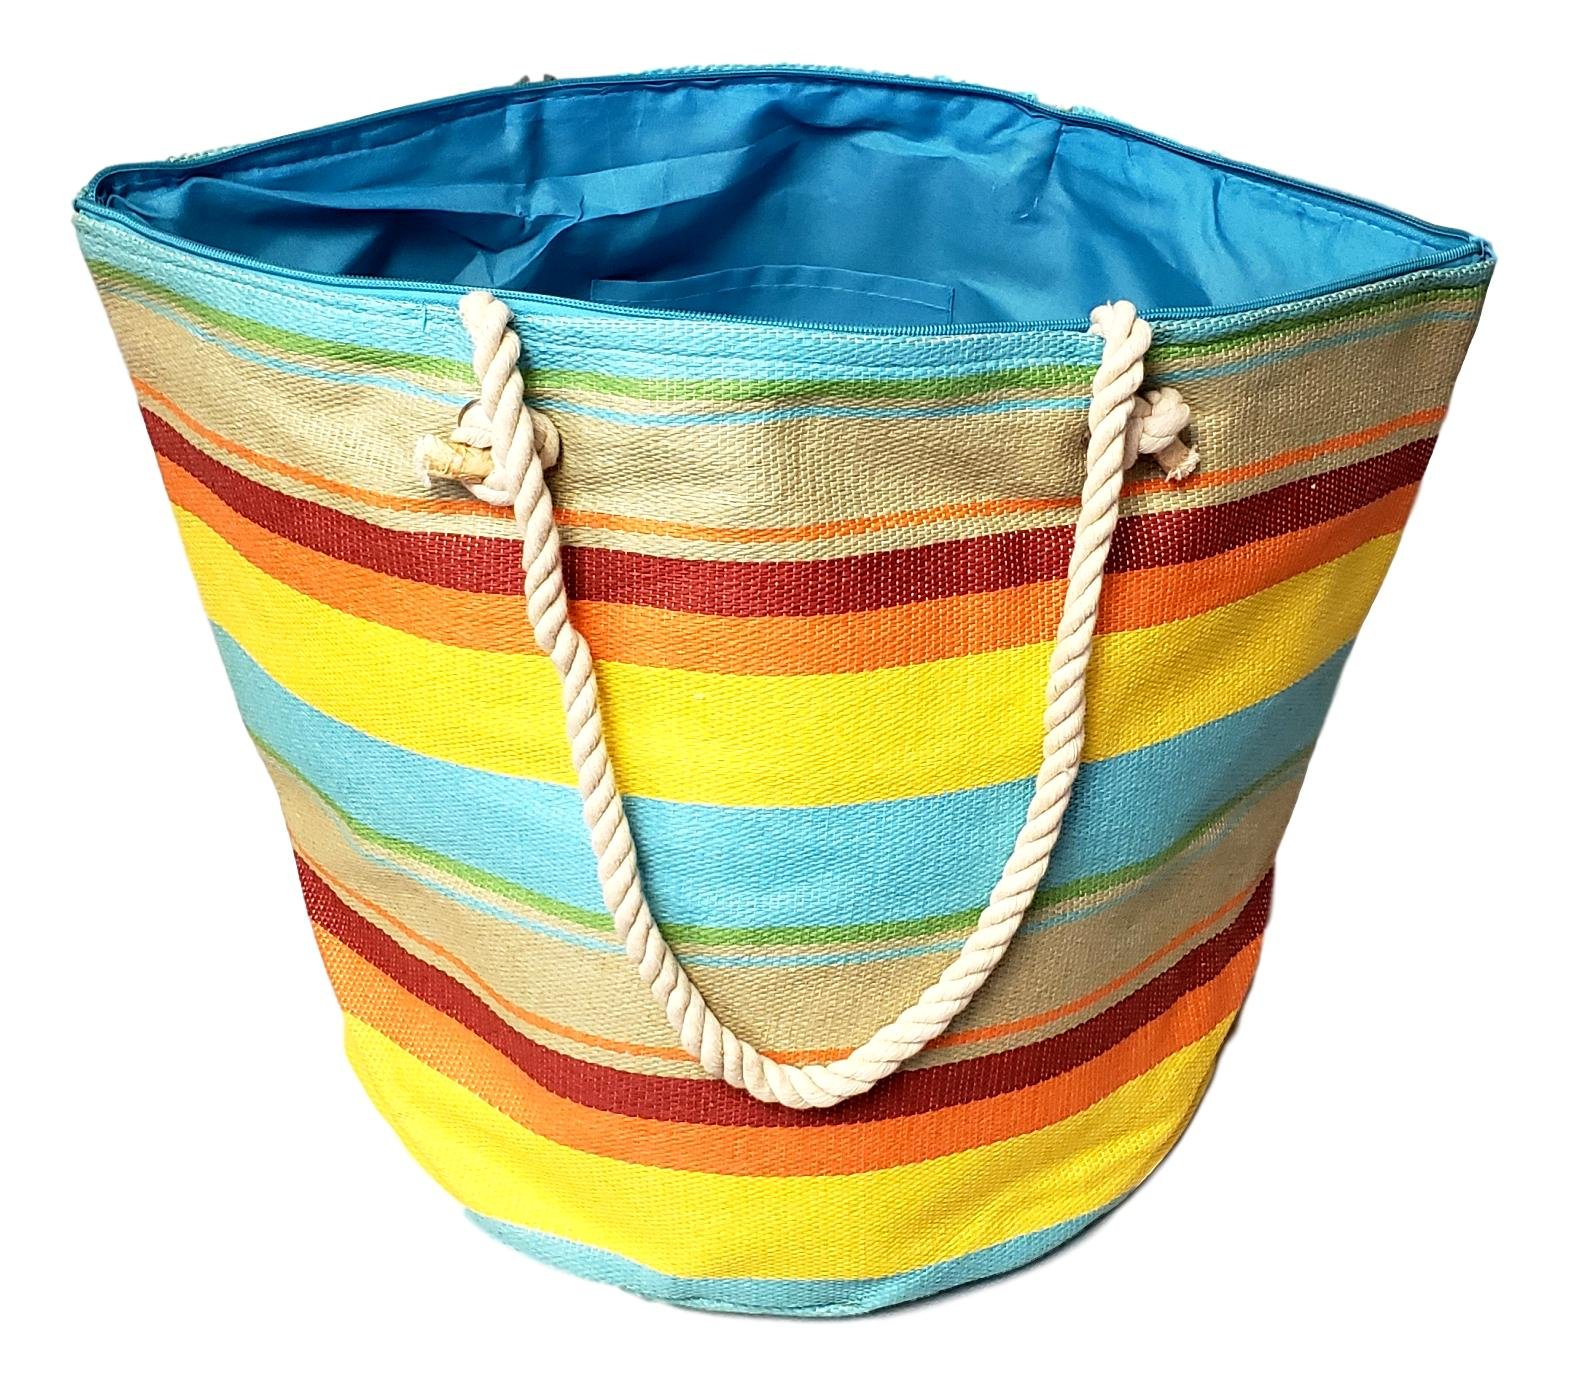 XL Hobo Bucket Striped Summer Womens Beach Bag Tote with Zipper Top (Sunset Stripe) by 101 BEACH (Image #3)